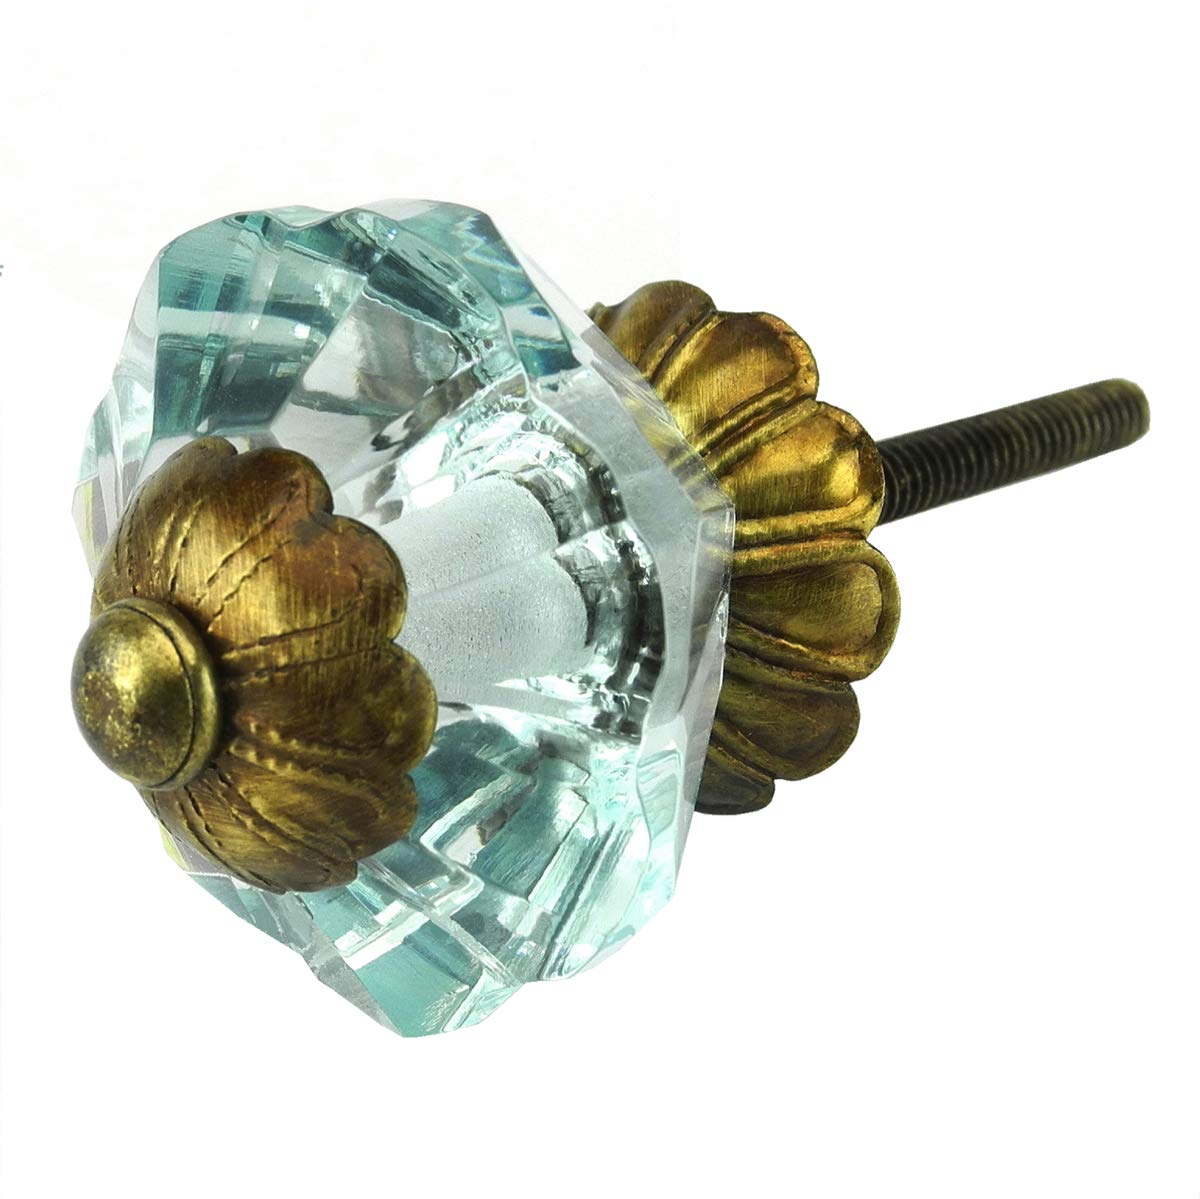 Arctic Blue Glass Cabinet Knobs, Dresser Drawer & Handles Set/8pc ~ K187FF Art Deco Glass Knobs w/Antique Brass Florentine Hardware for Armoire, Kitchen Cabinets, Cupboards, and Second Hand Furniture